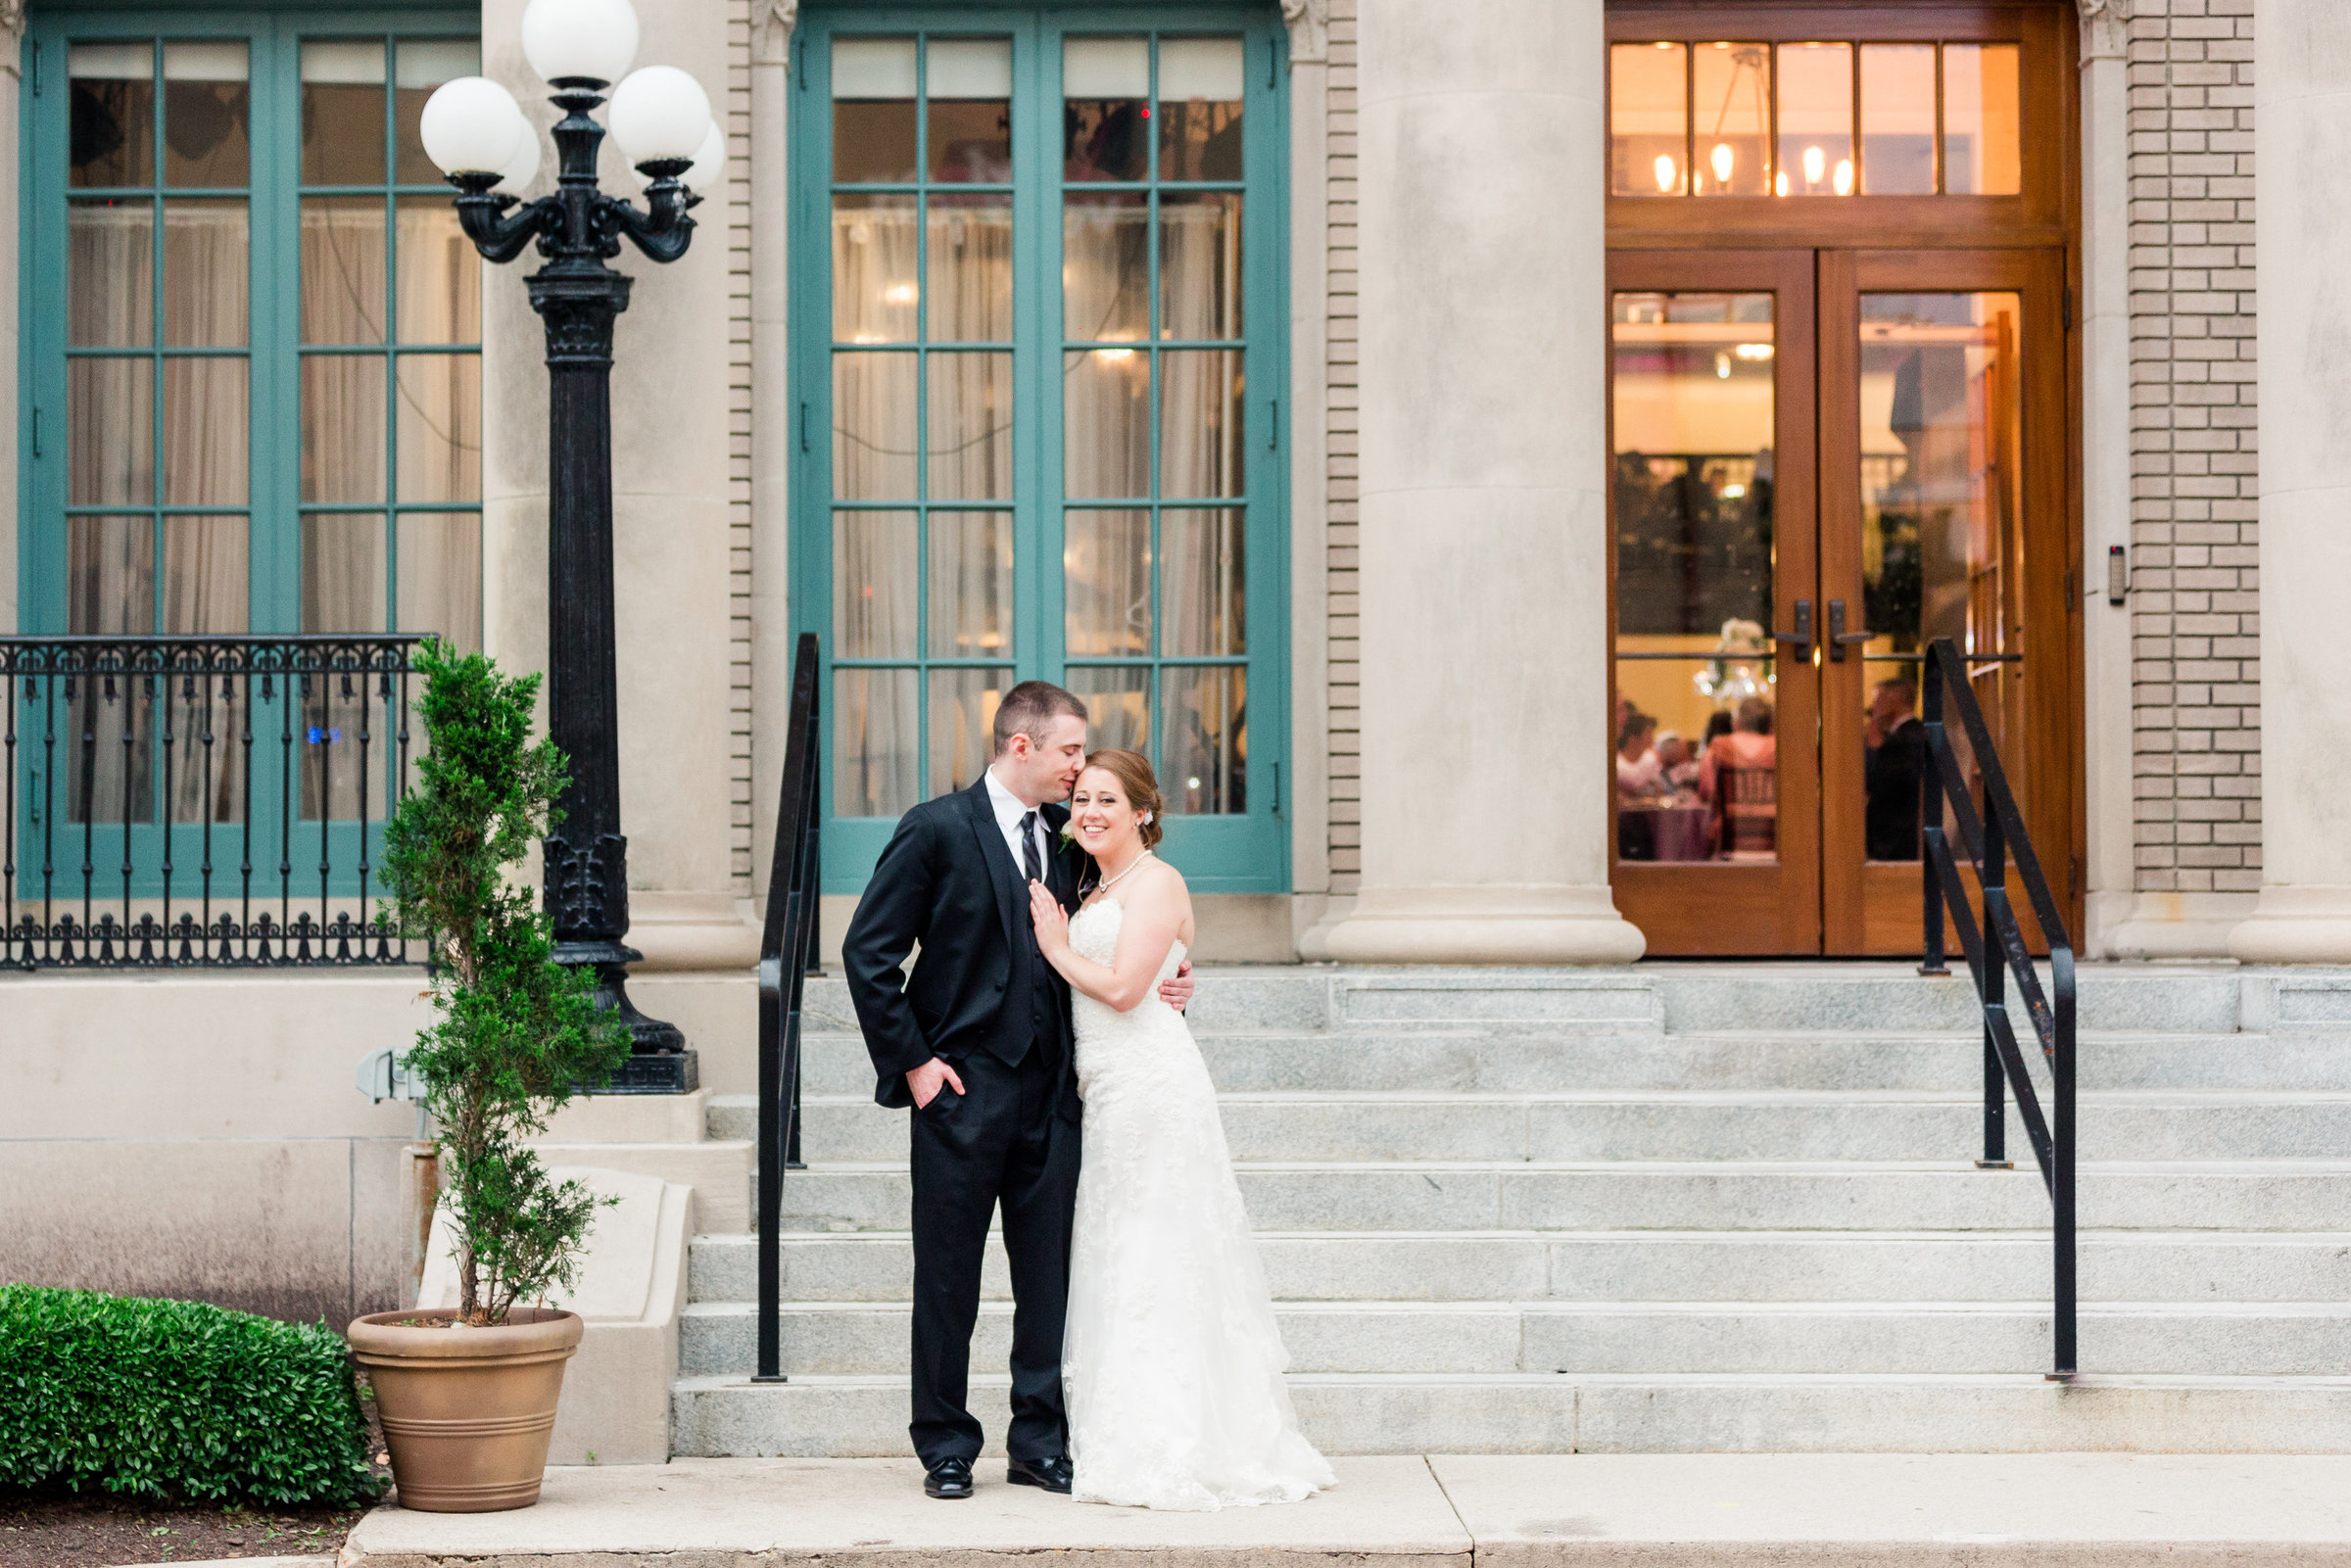 andrew-nichole-historic-post-office-greek-wedding-hampton-va-20